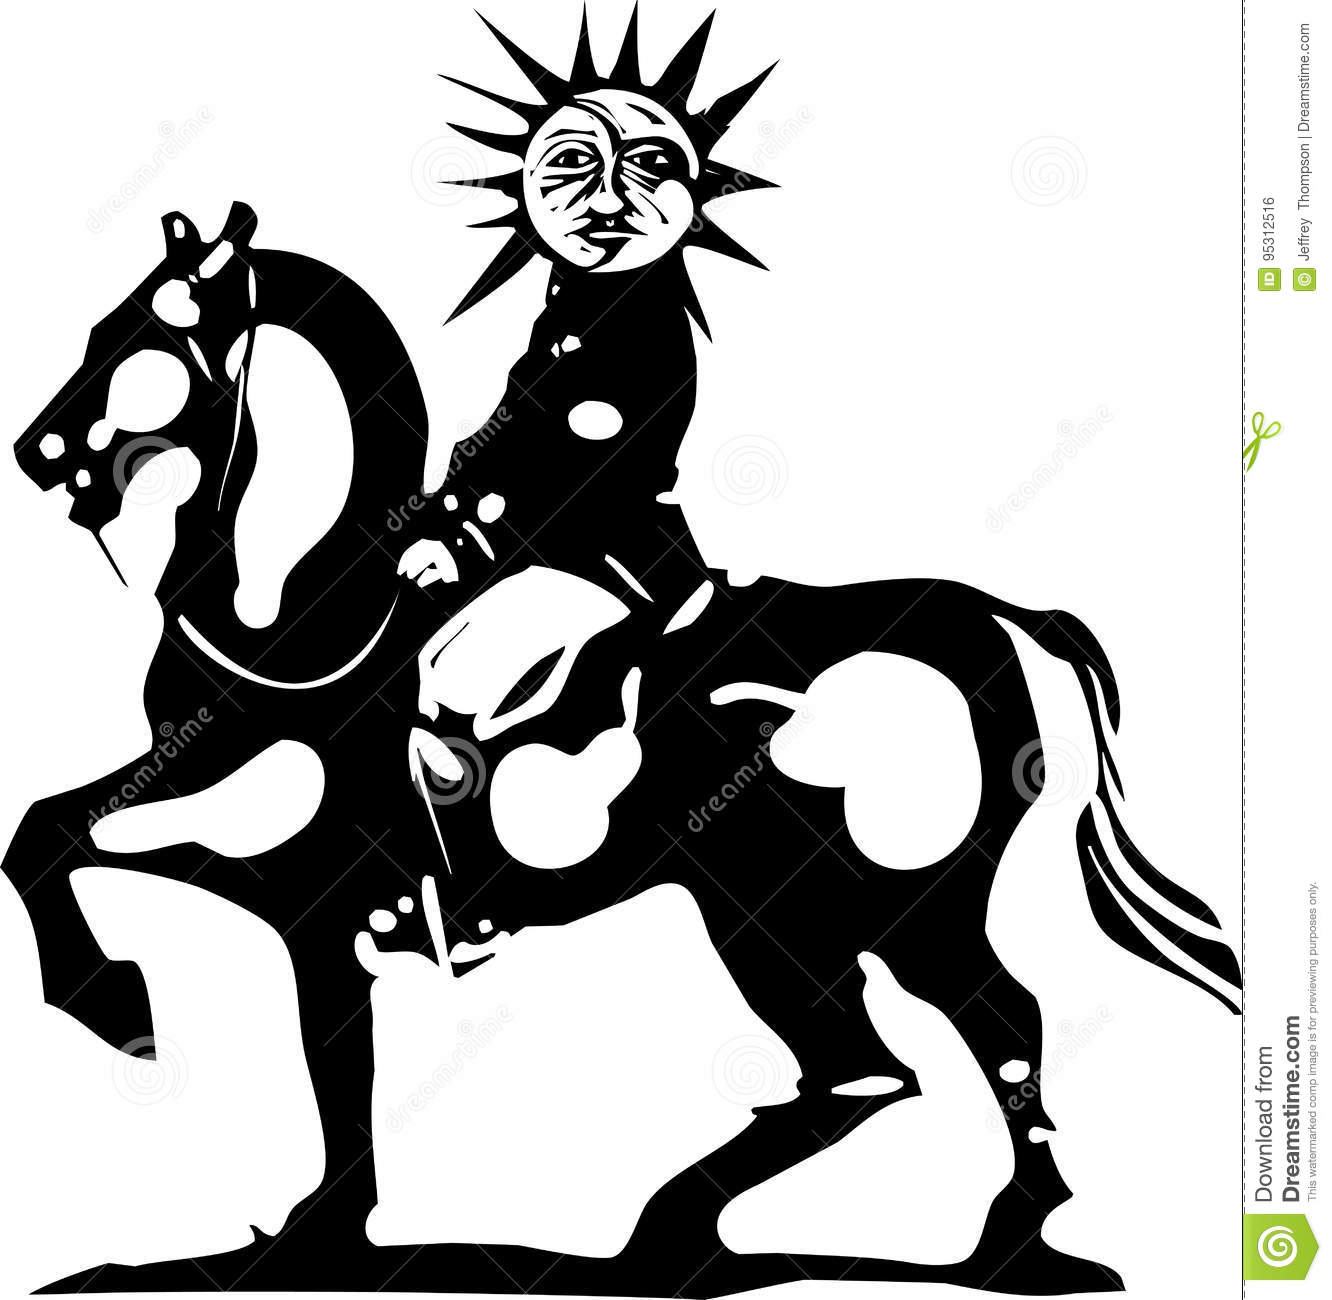 Horse With Sun King Stock Vector Illustration Of Empire 95312516